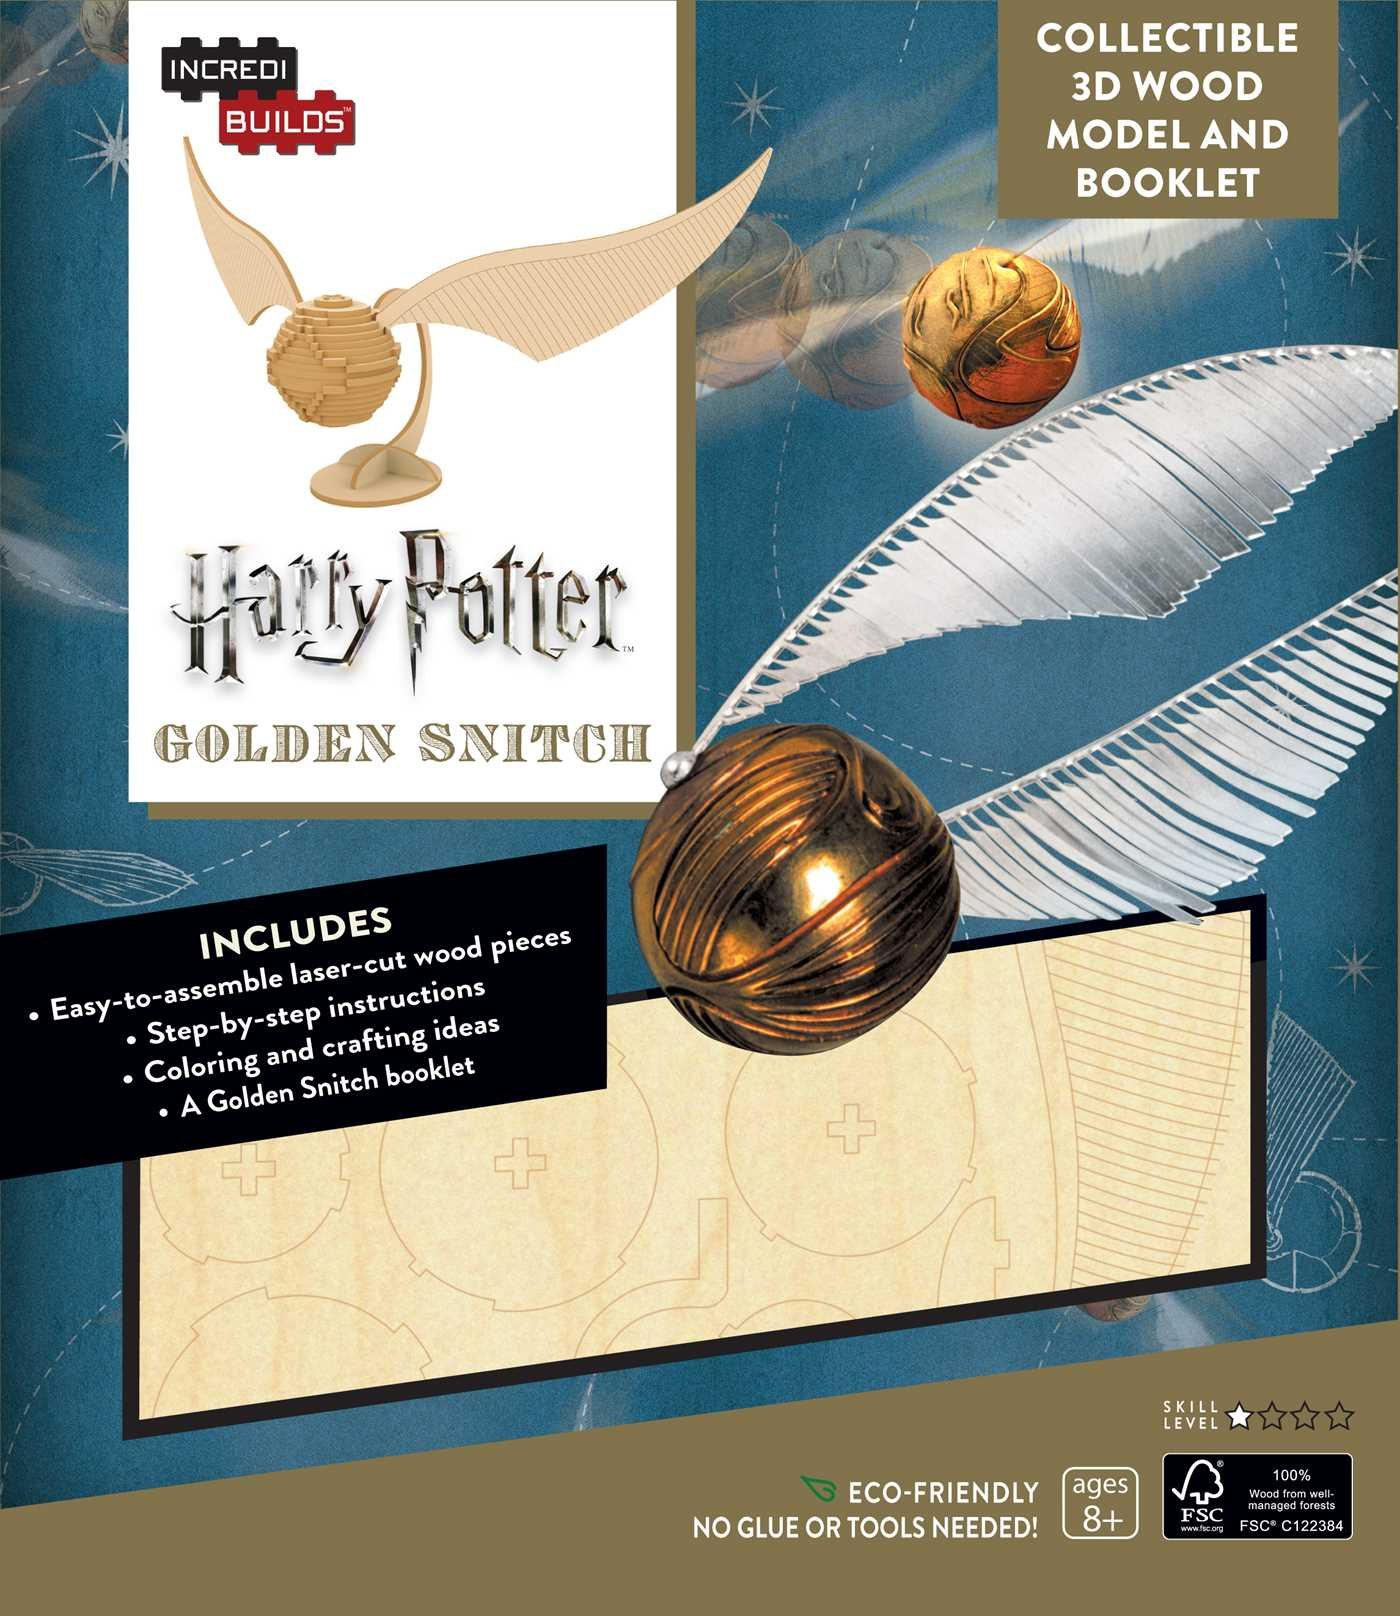 IncrediBuilds Potter Golden Snitch Booklet product image